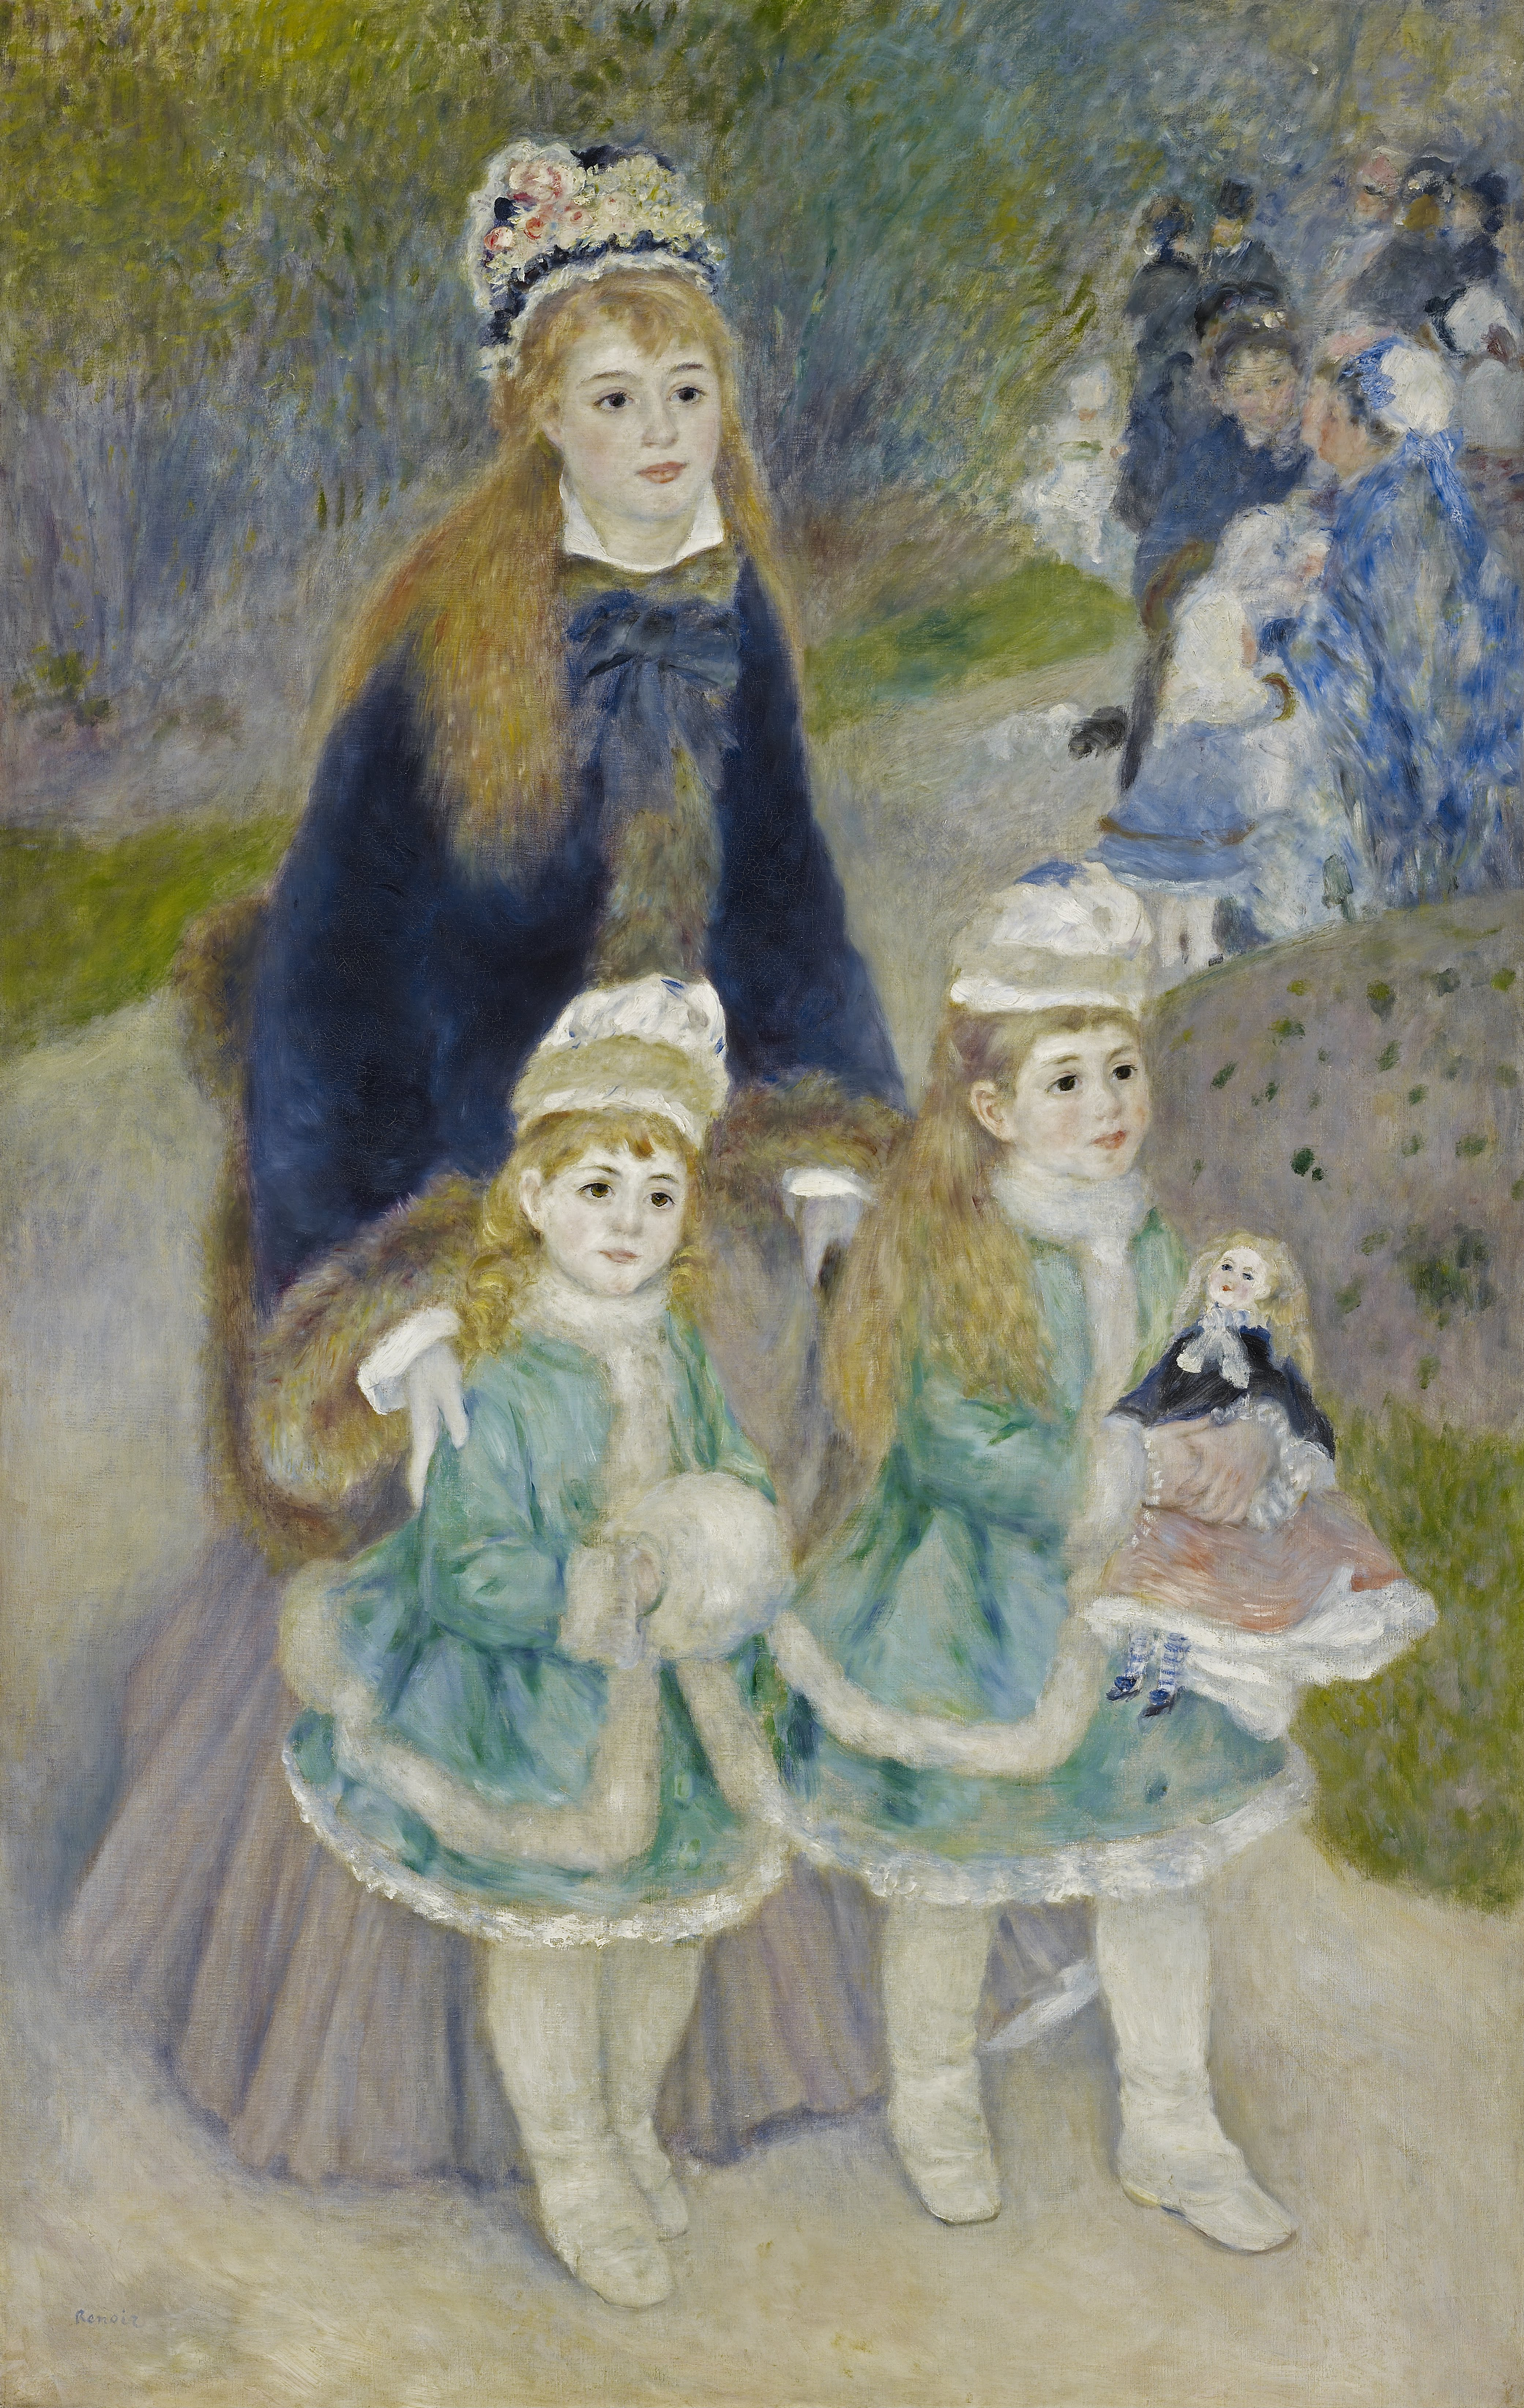 A painting of a woman and two girls standing on a path, all three of which having blonde hair and wearing blue coats and both facing and looking right